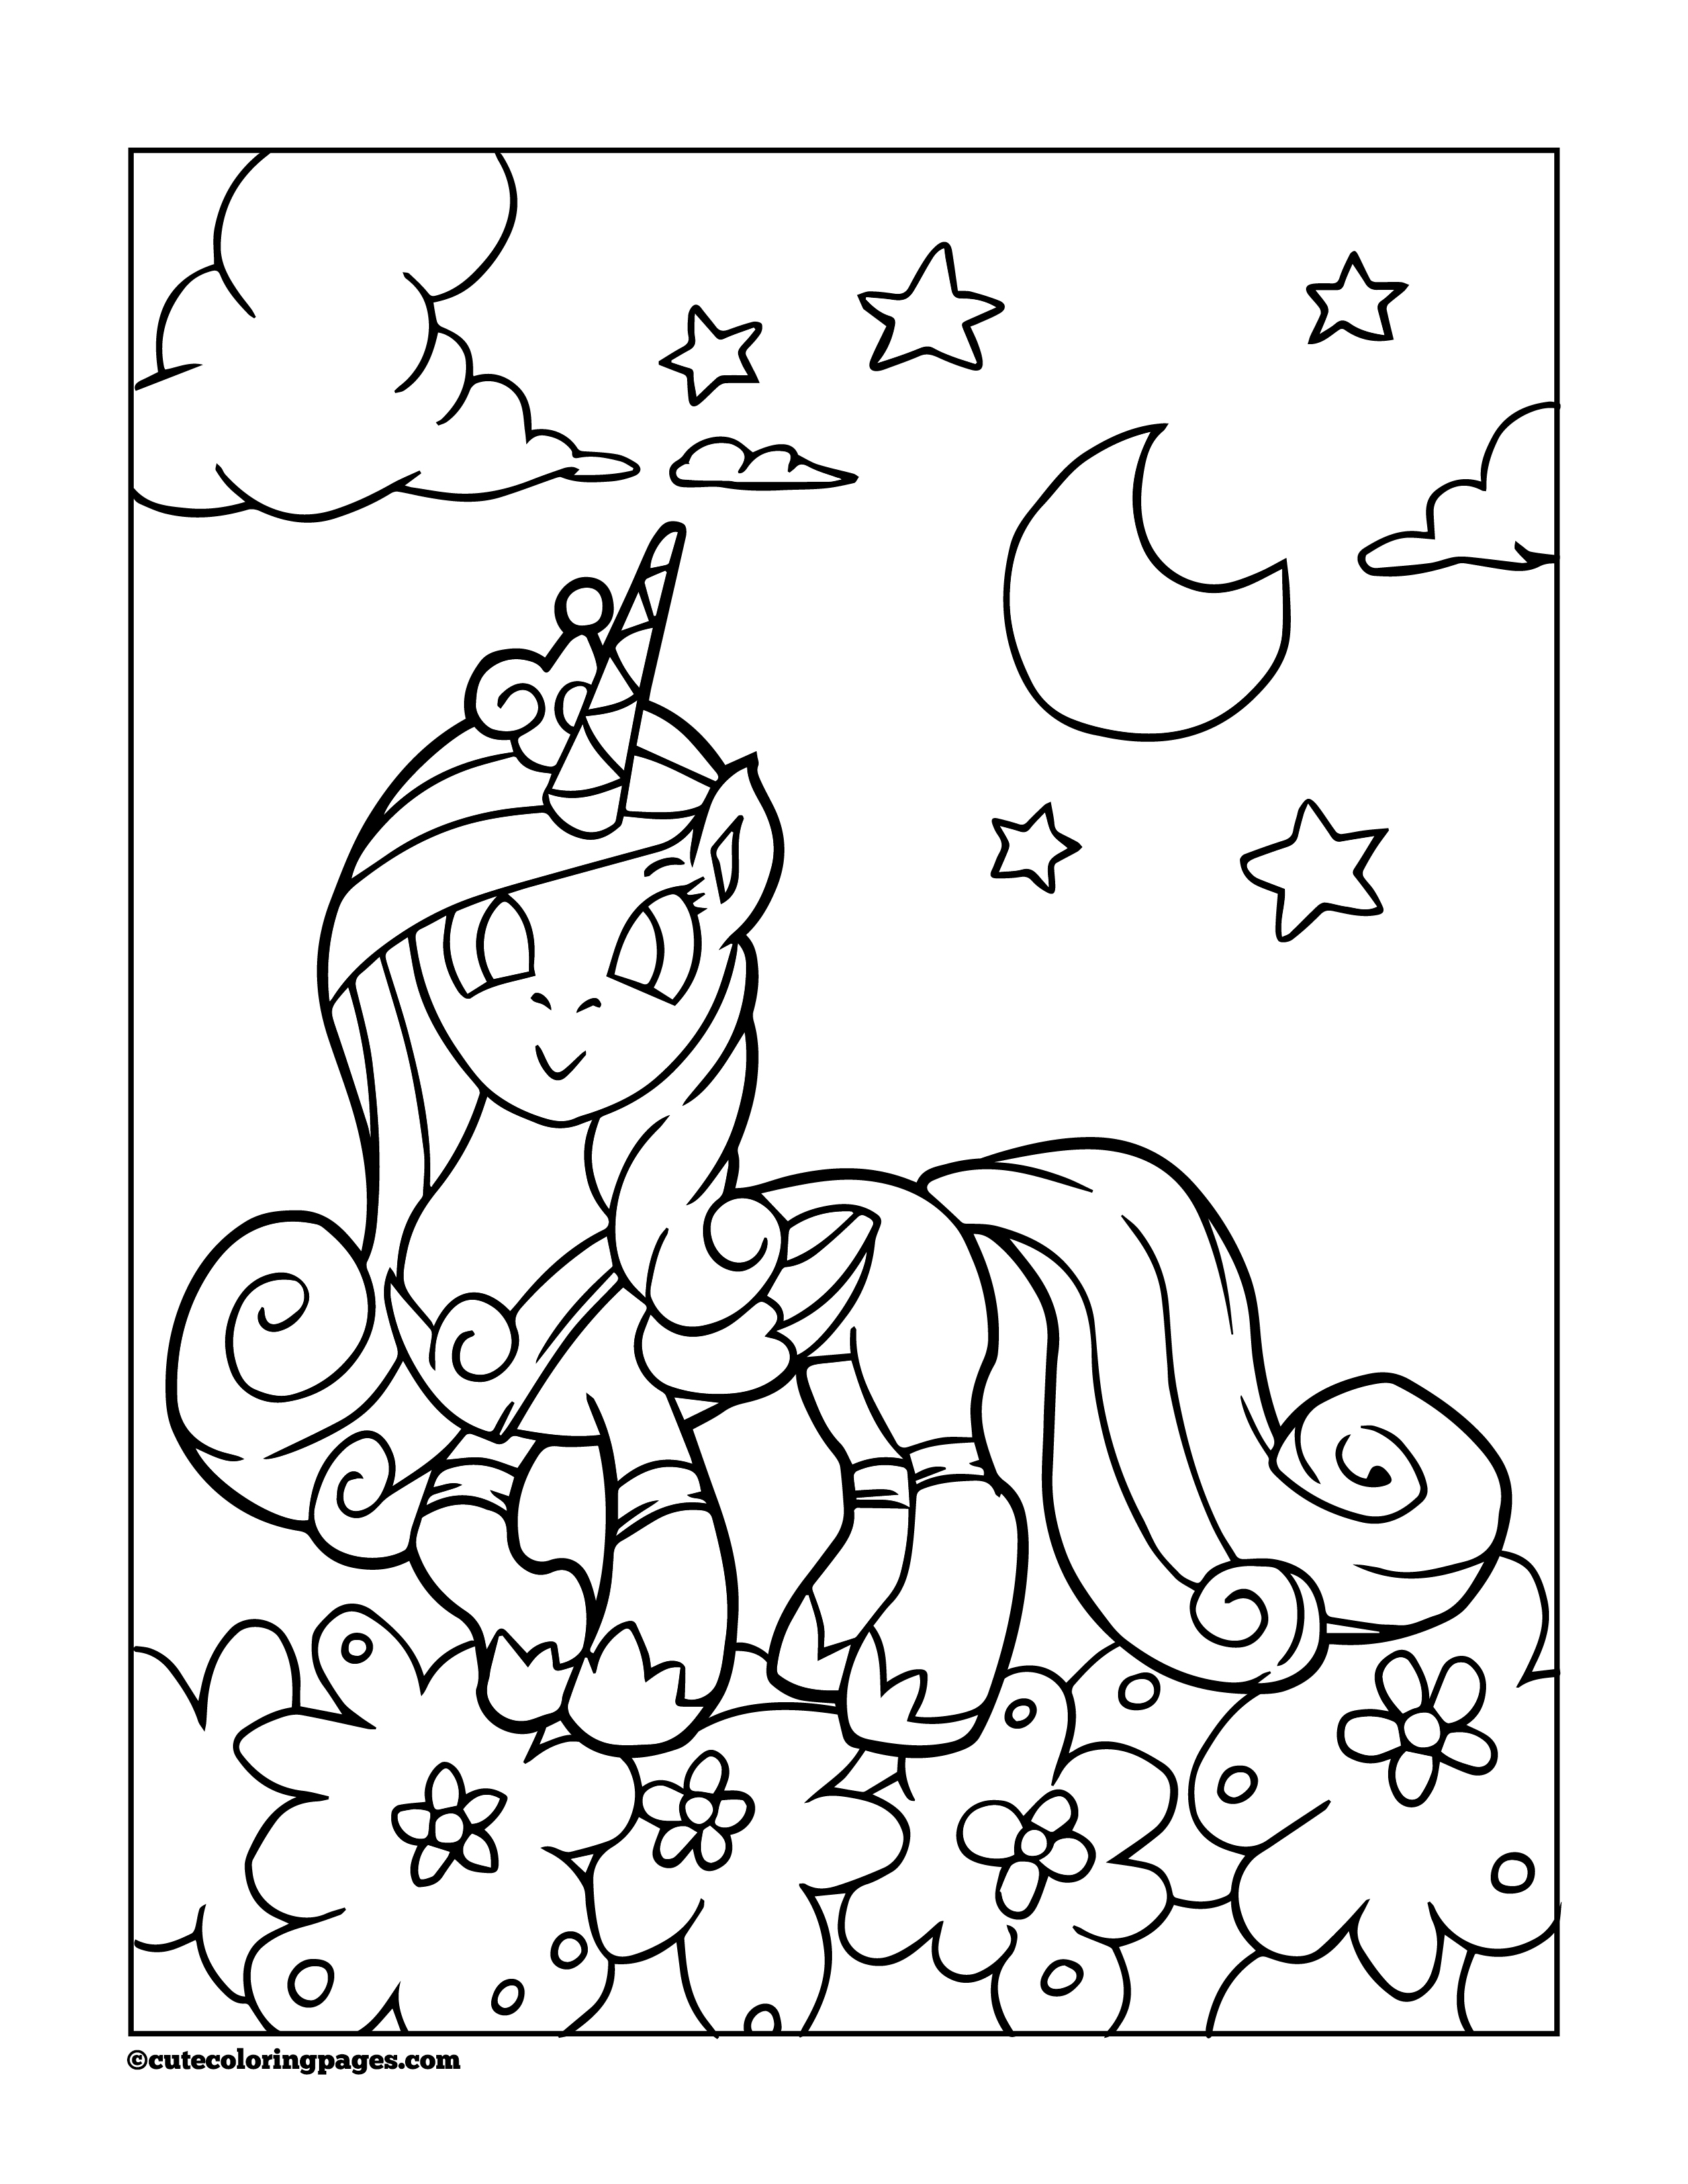 coloring unicorn colour unicorn coloring pages to download and print for free coloring colour unicorn